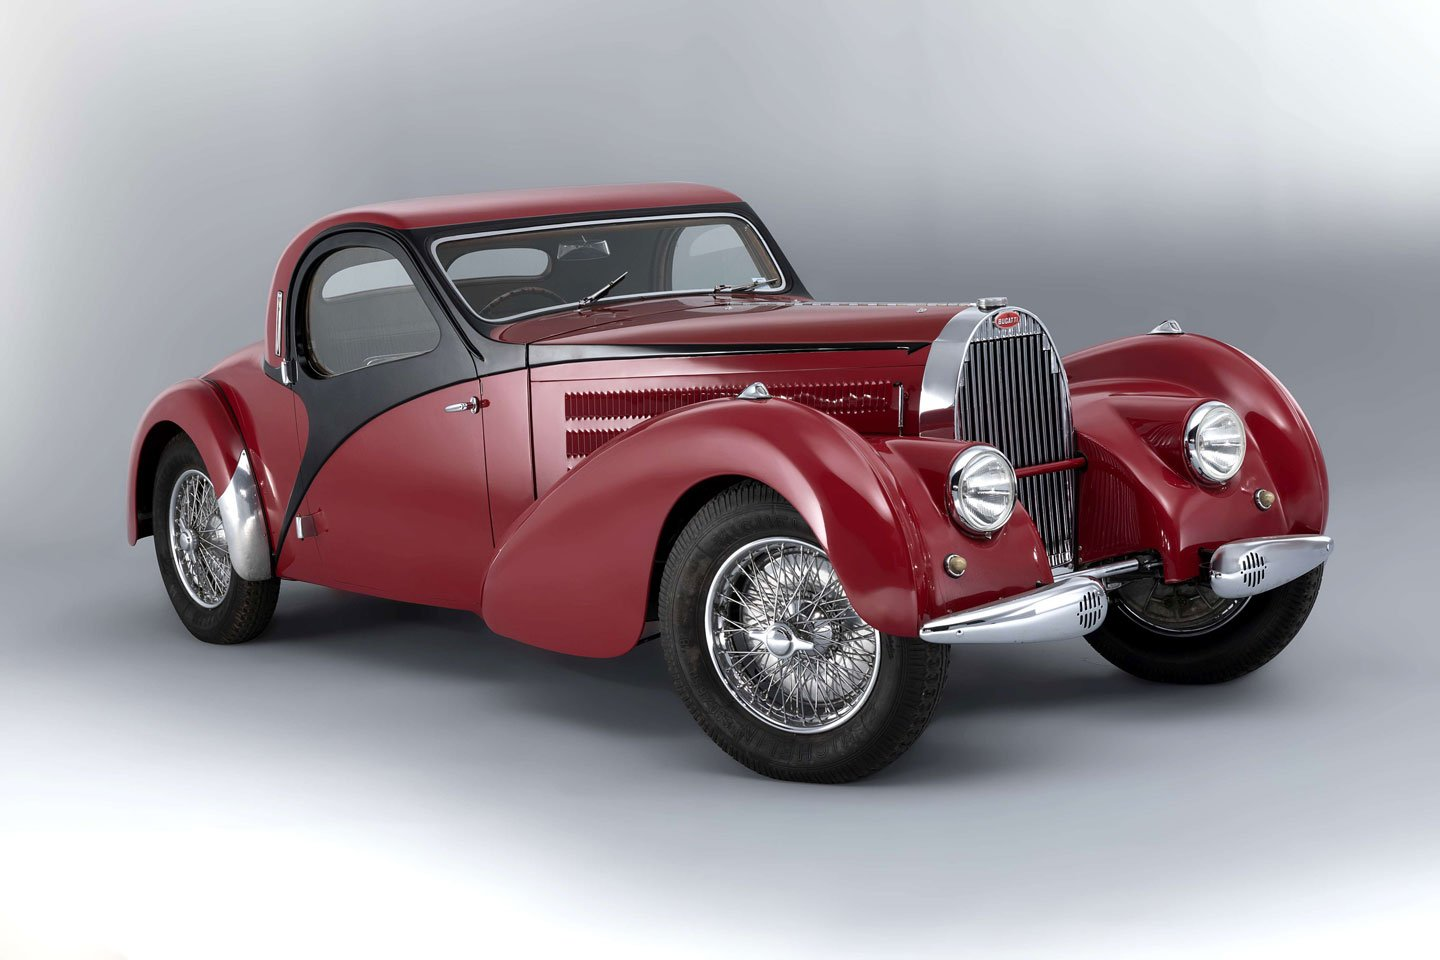 Who Is The Biggest Importer of Classic Cars from the USA?